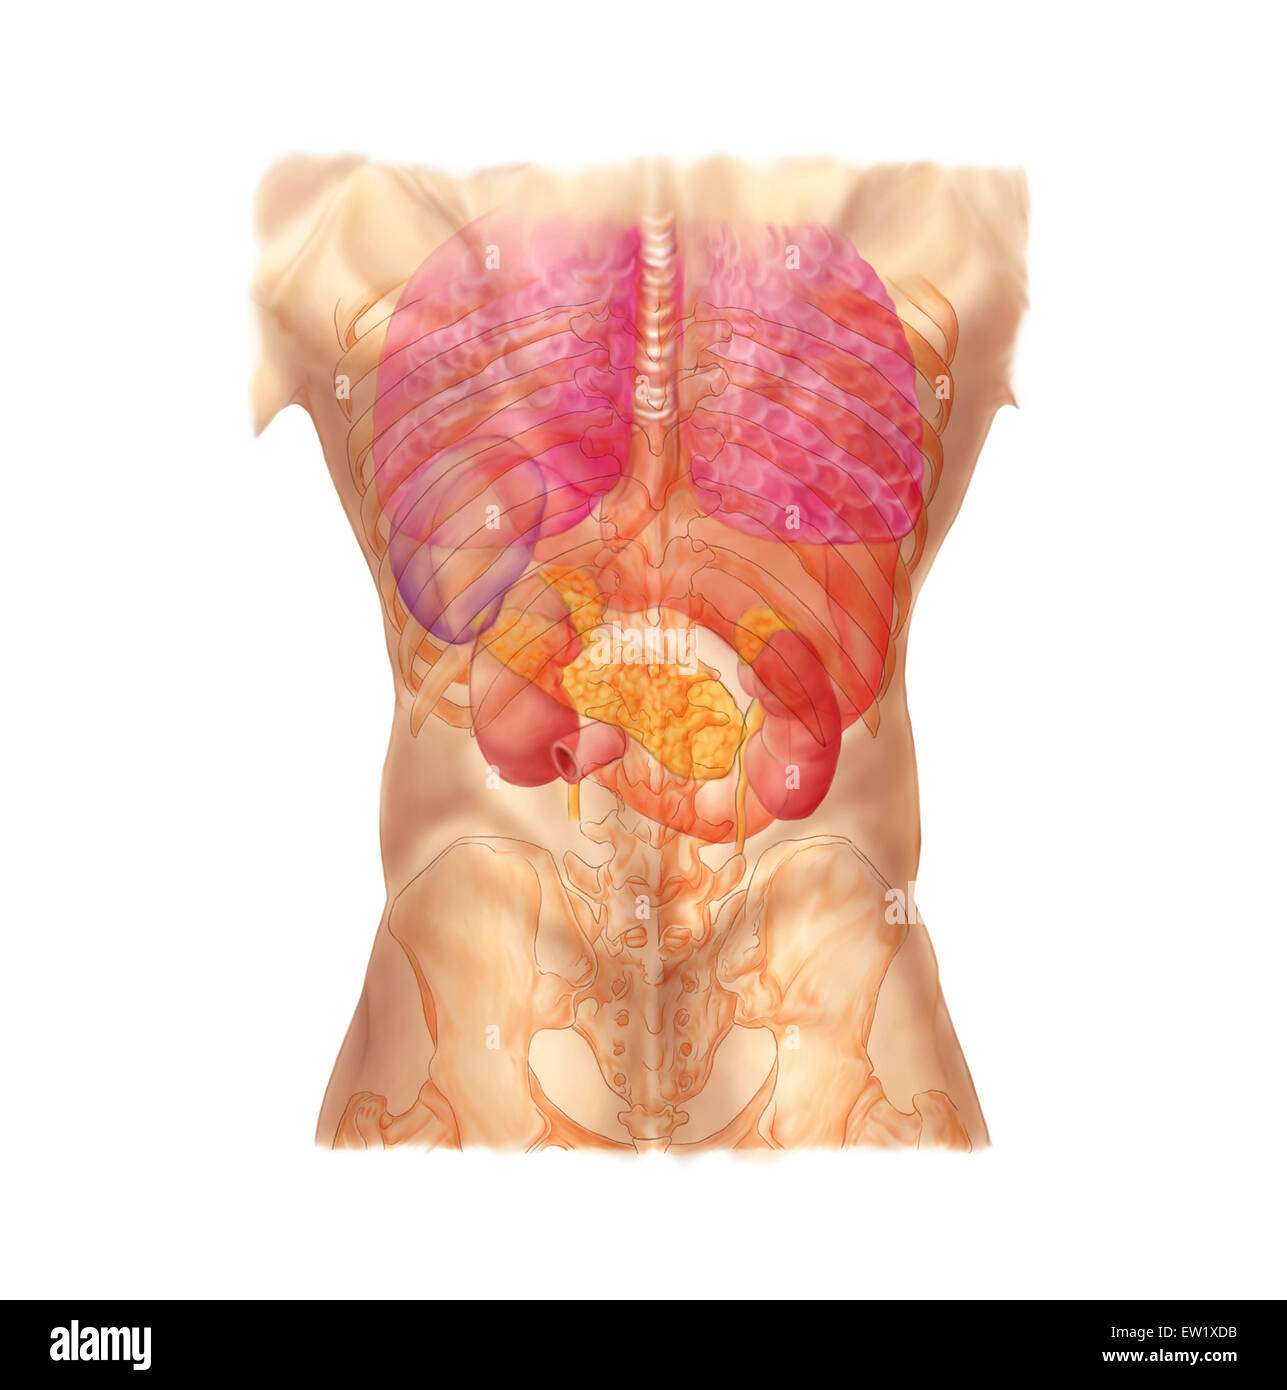 Posterior View Of The Lungs Stock Photos Posterior View Of The